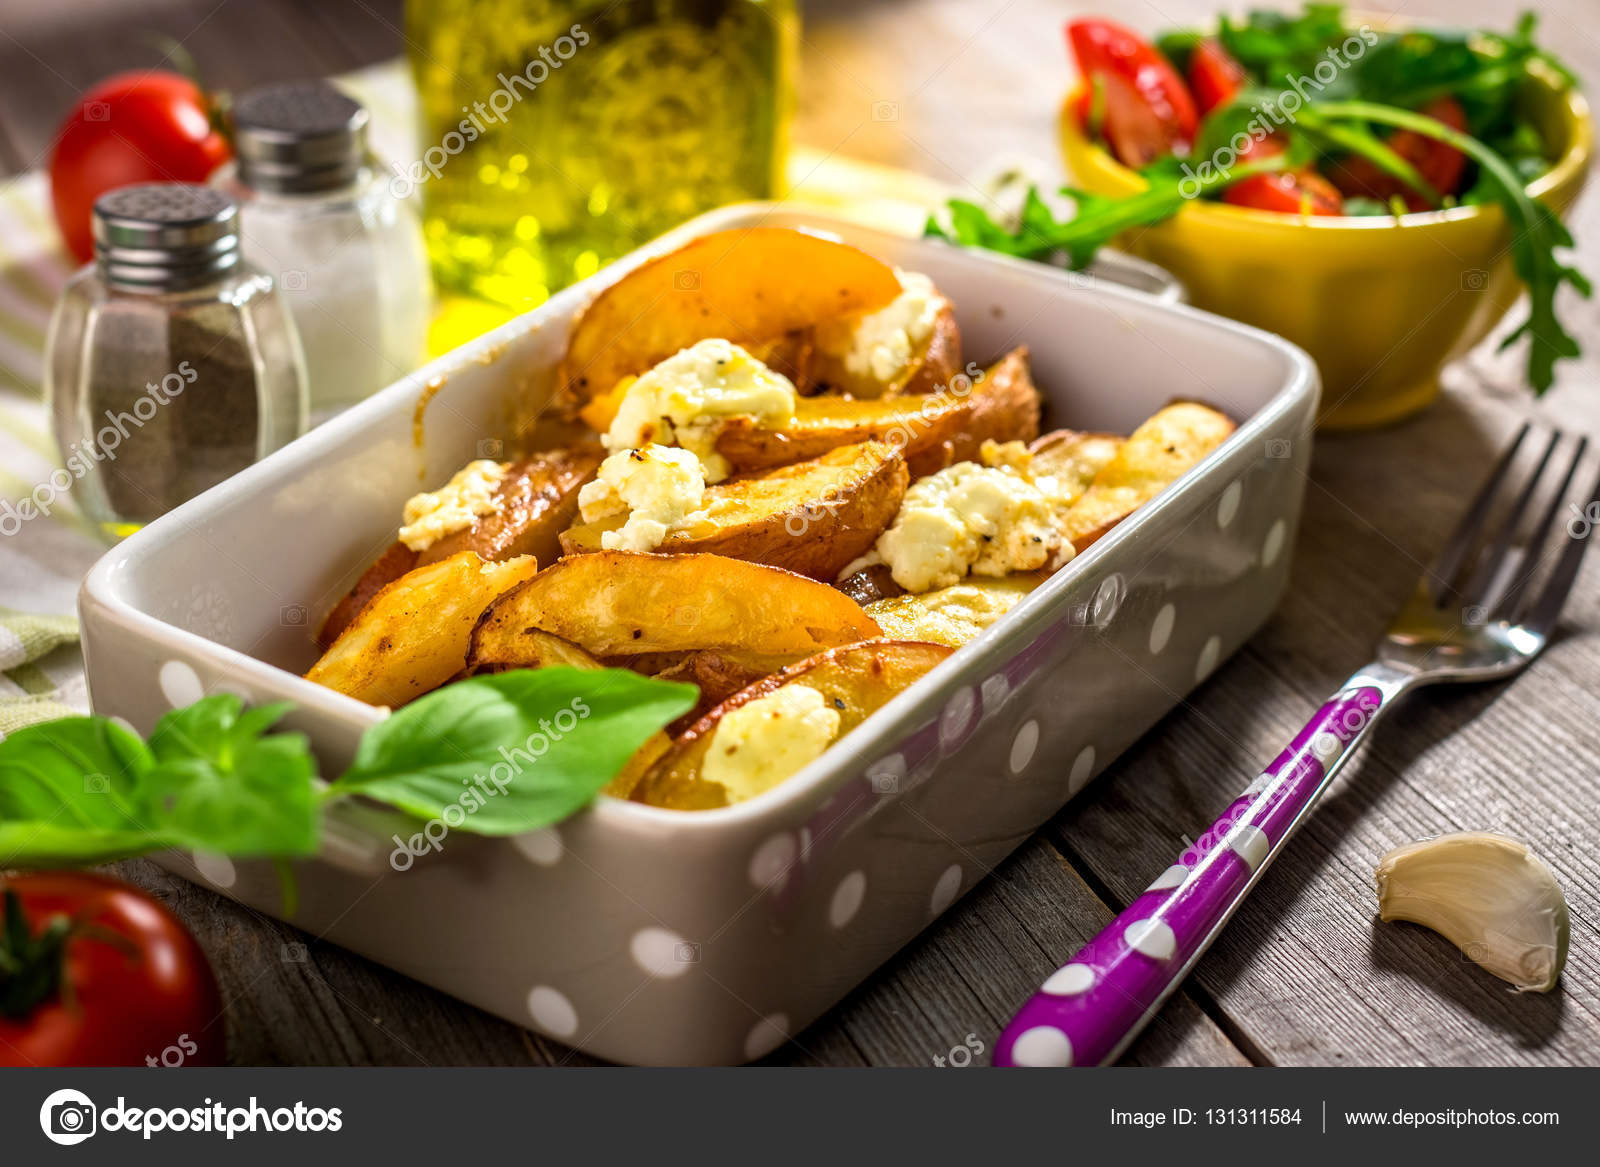 Pleasant Baked Potatoes With Cottage Cheese Stock Photo Download Free Architecture Designs Scobabritishbridgeorg